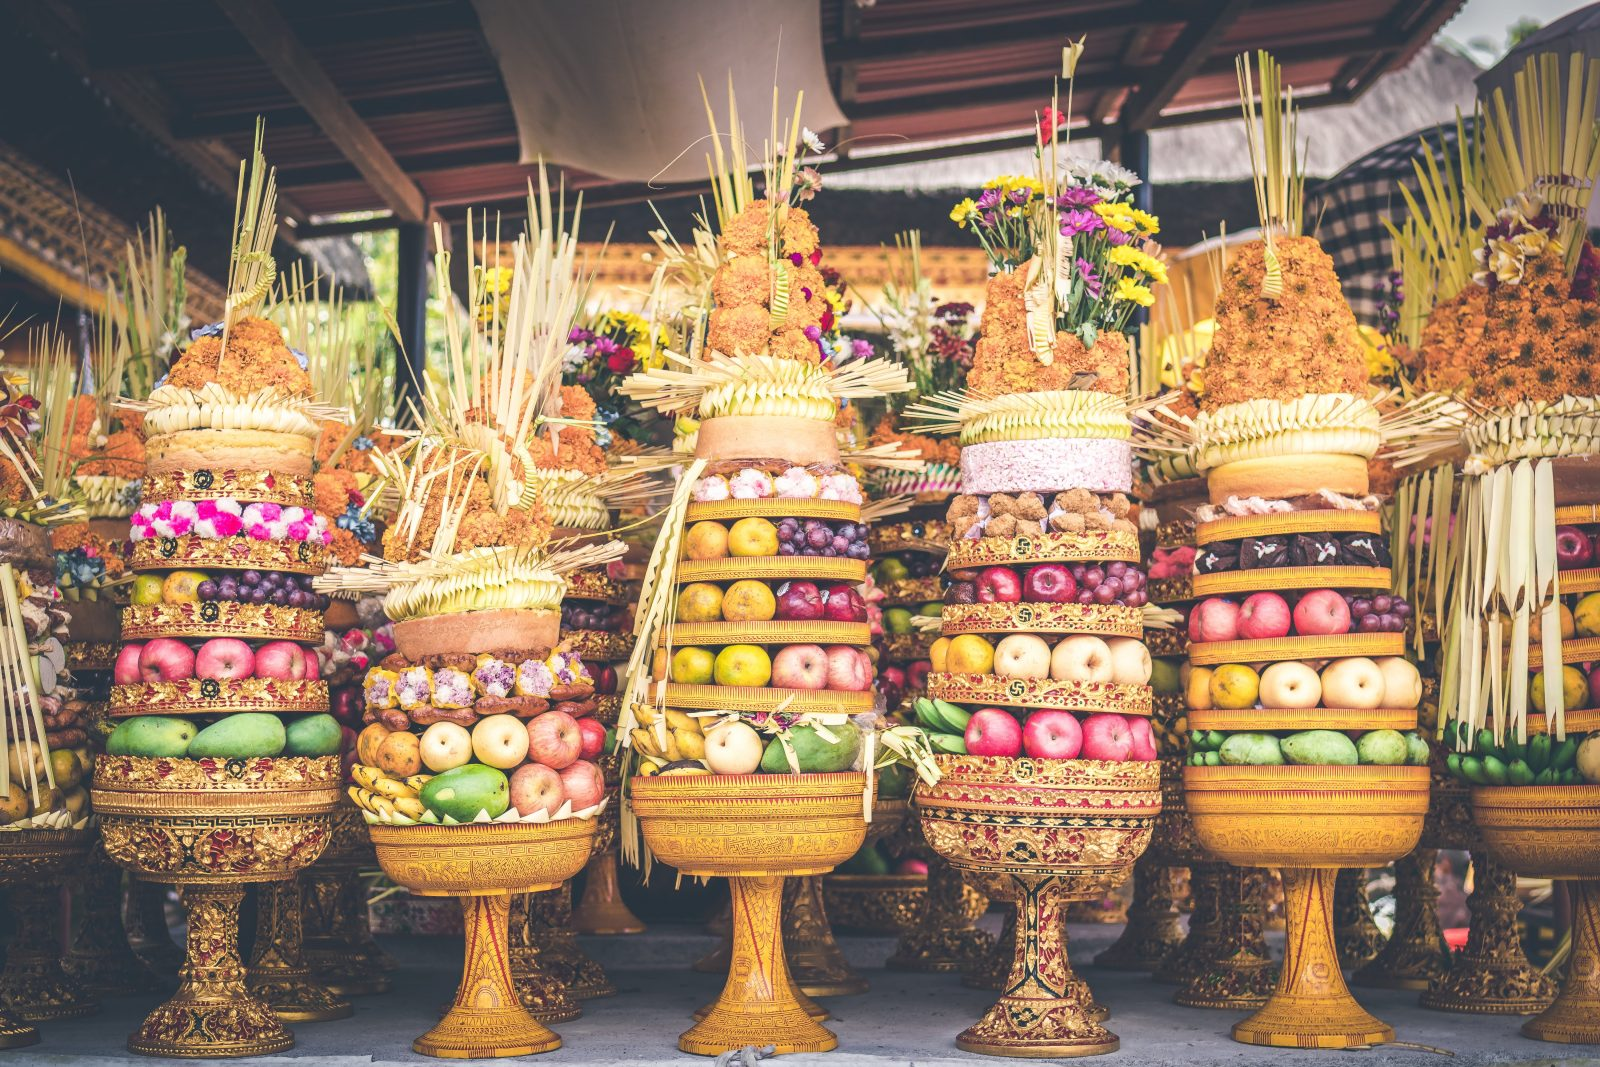 Colourful image of street fruit in Bali